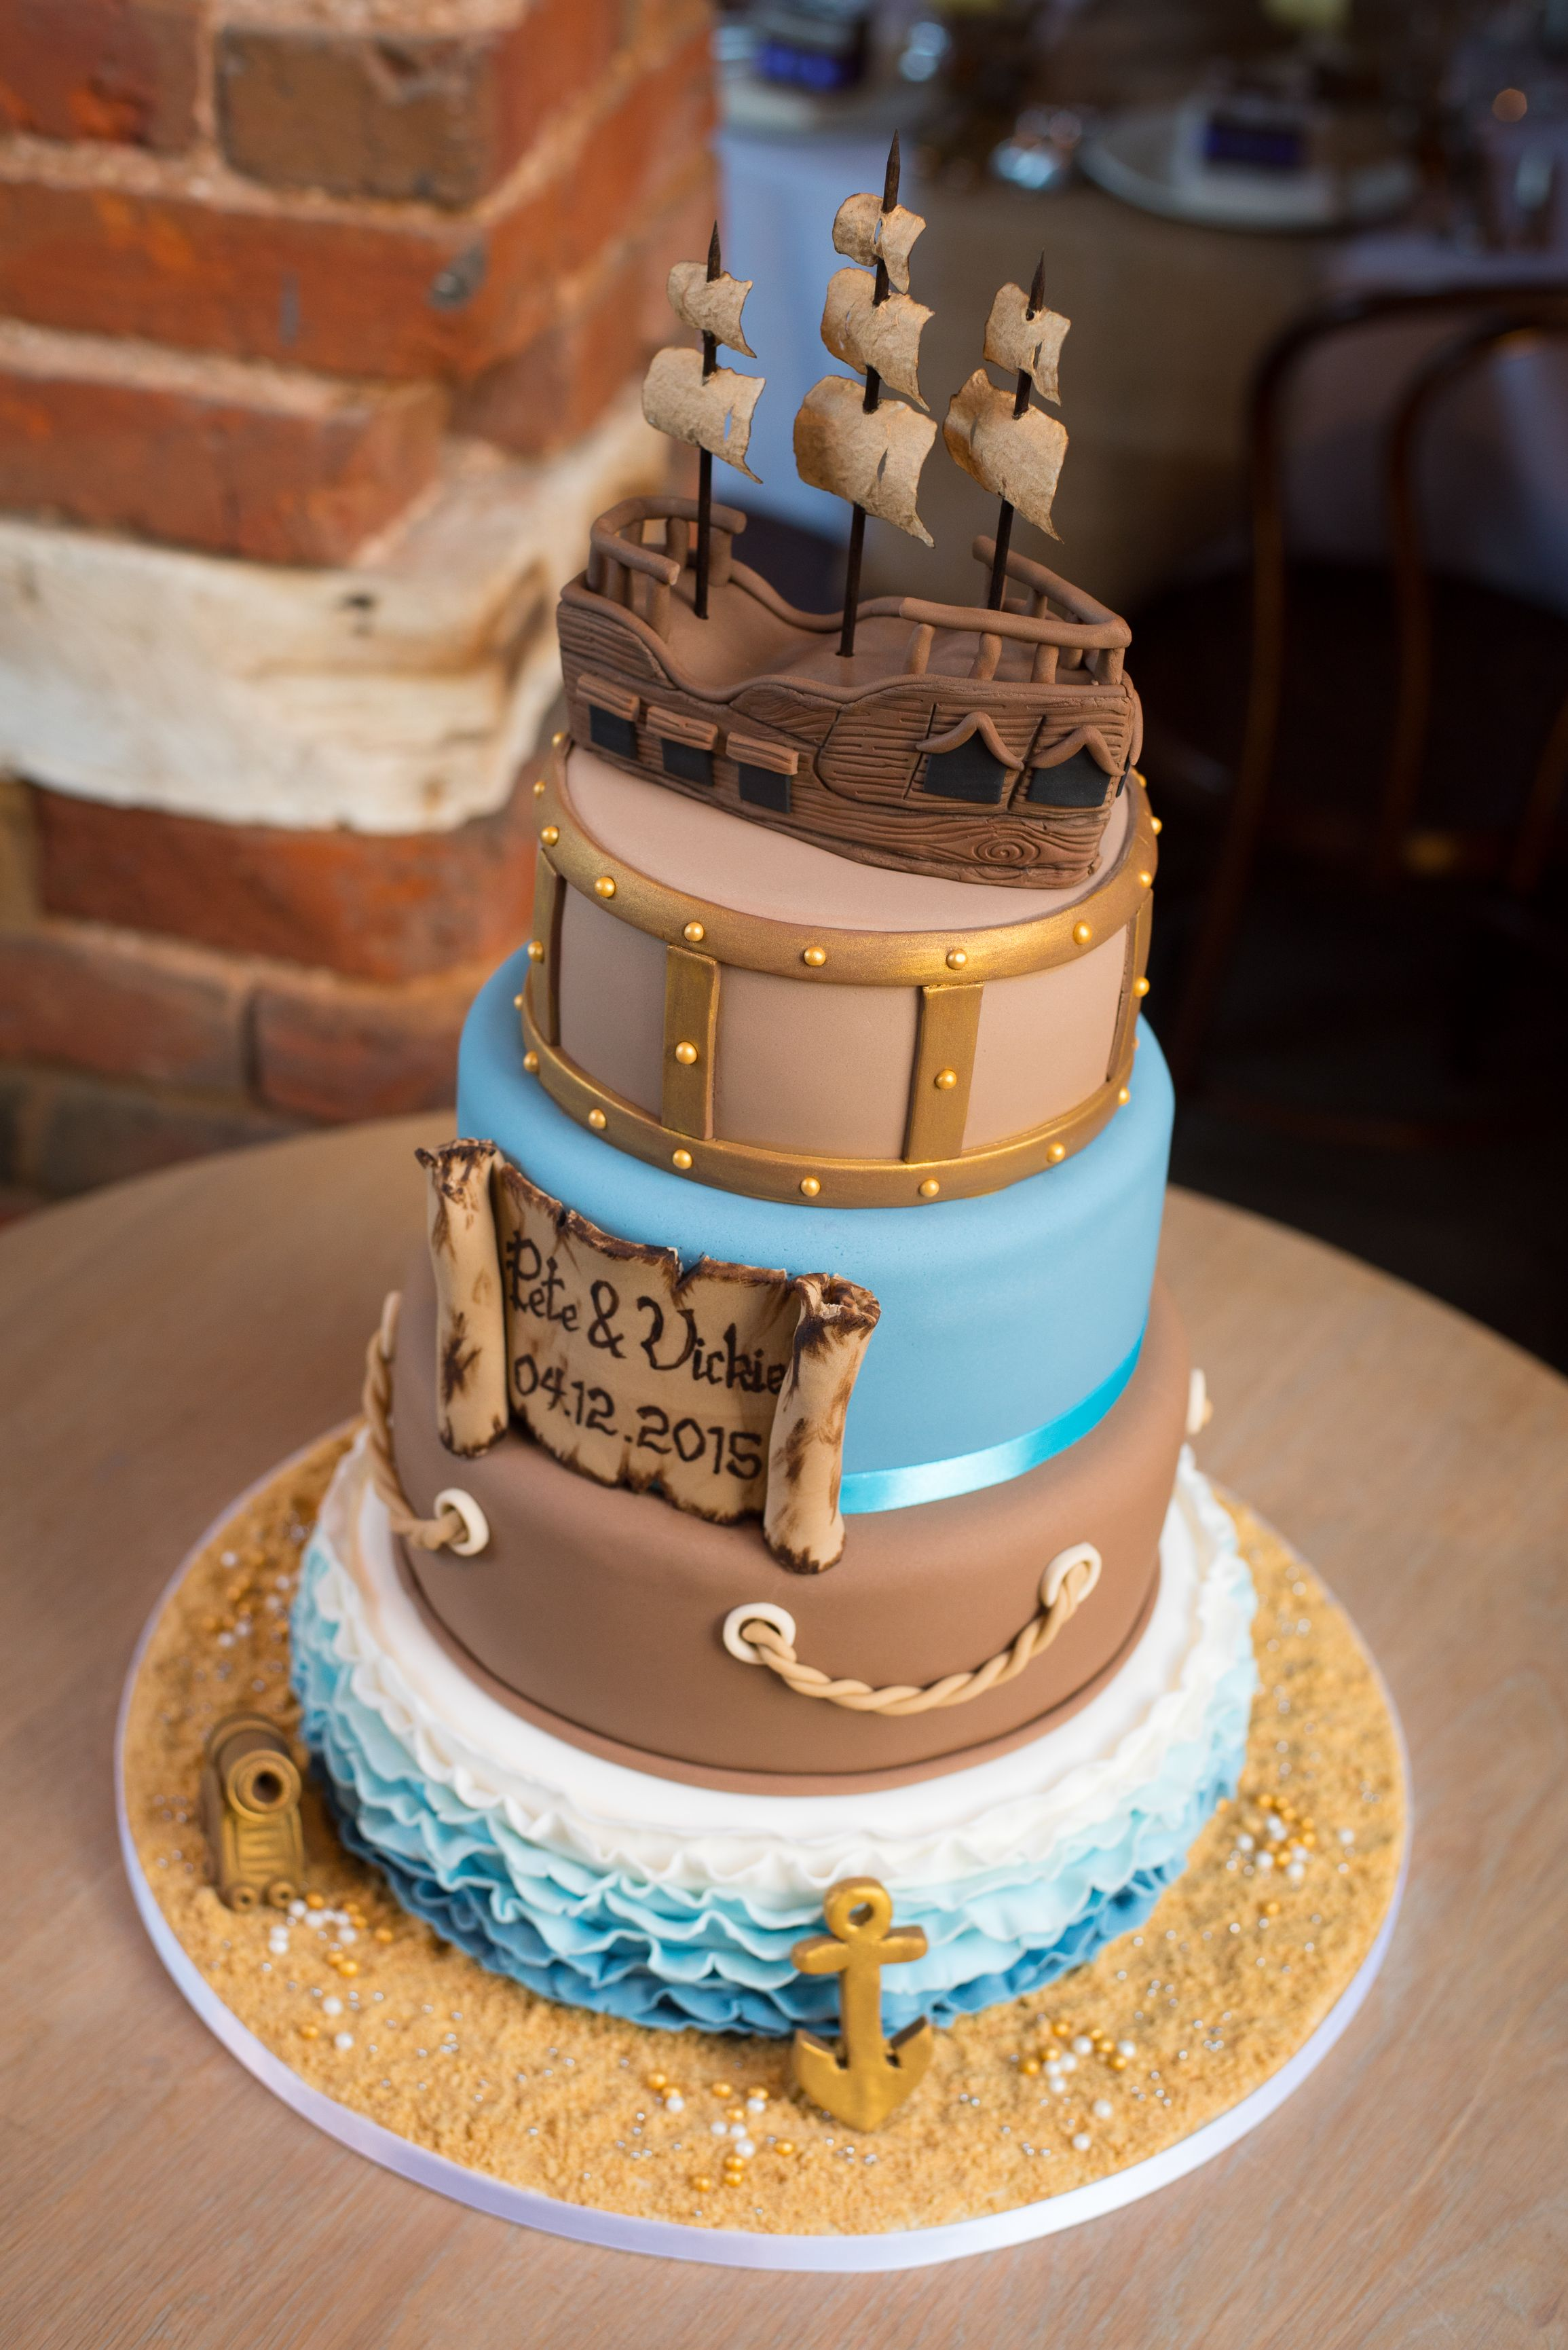 Pirate Theme Wedding Cake Piratewedding Inviteinabottle